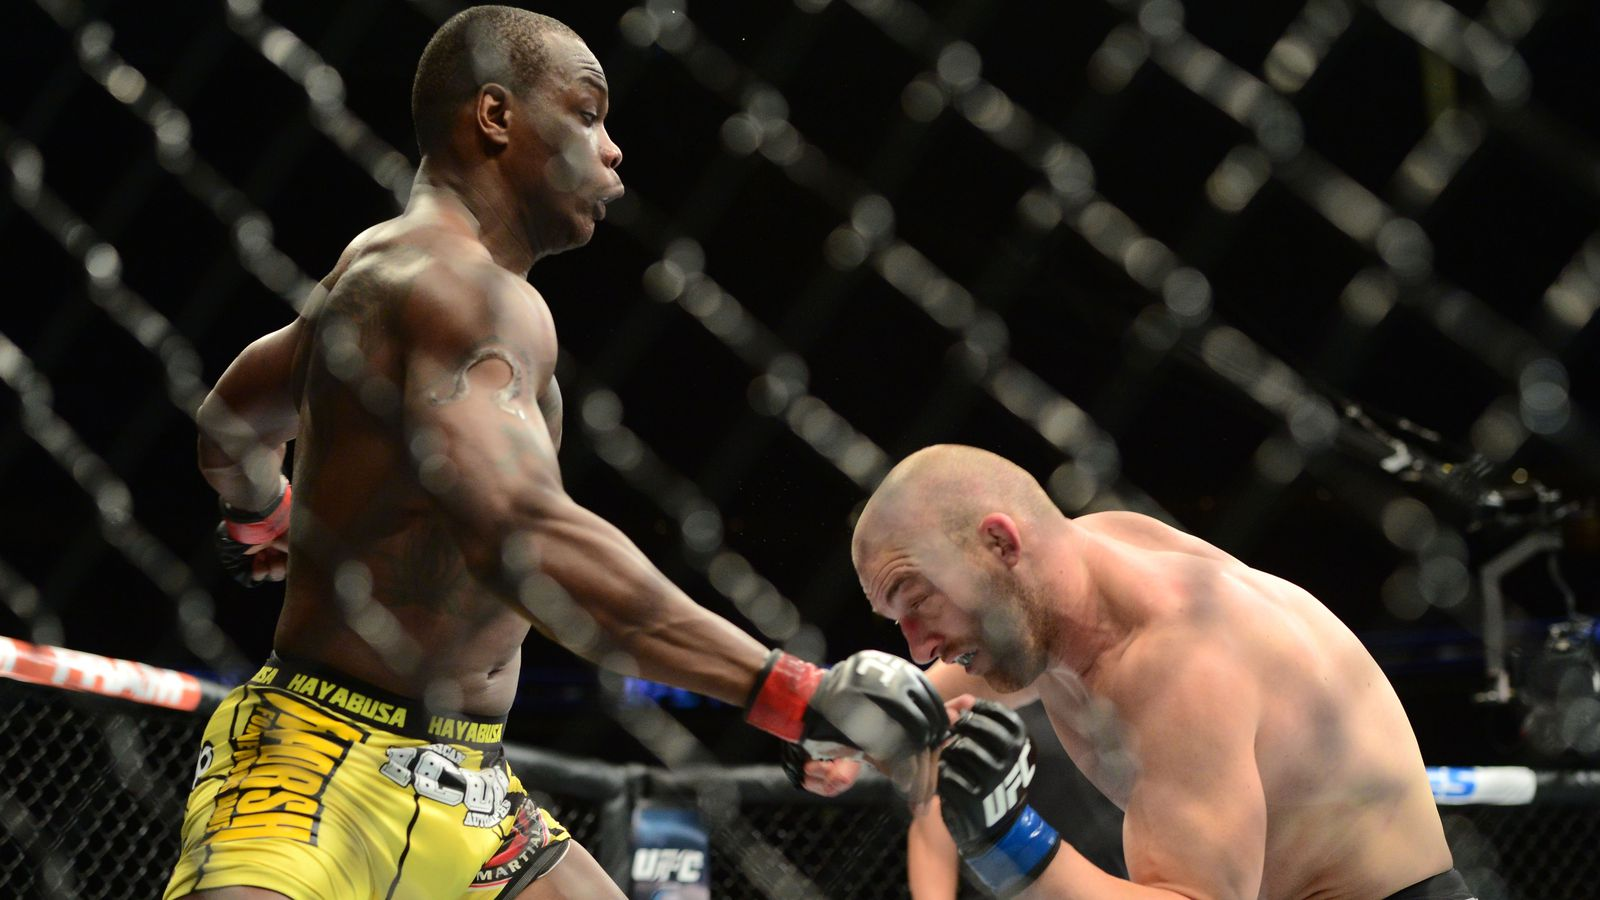 Ufc Fight Night 73 Complete Fighter Breakdown  Ovince